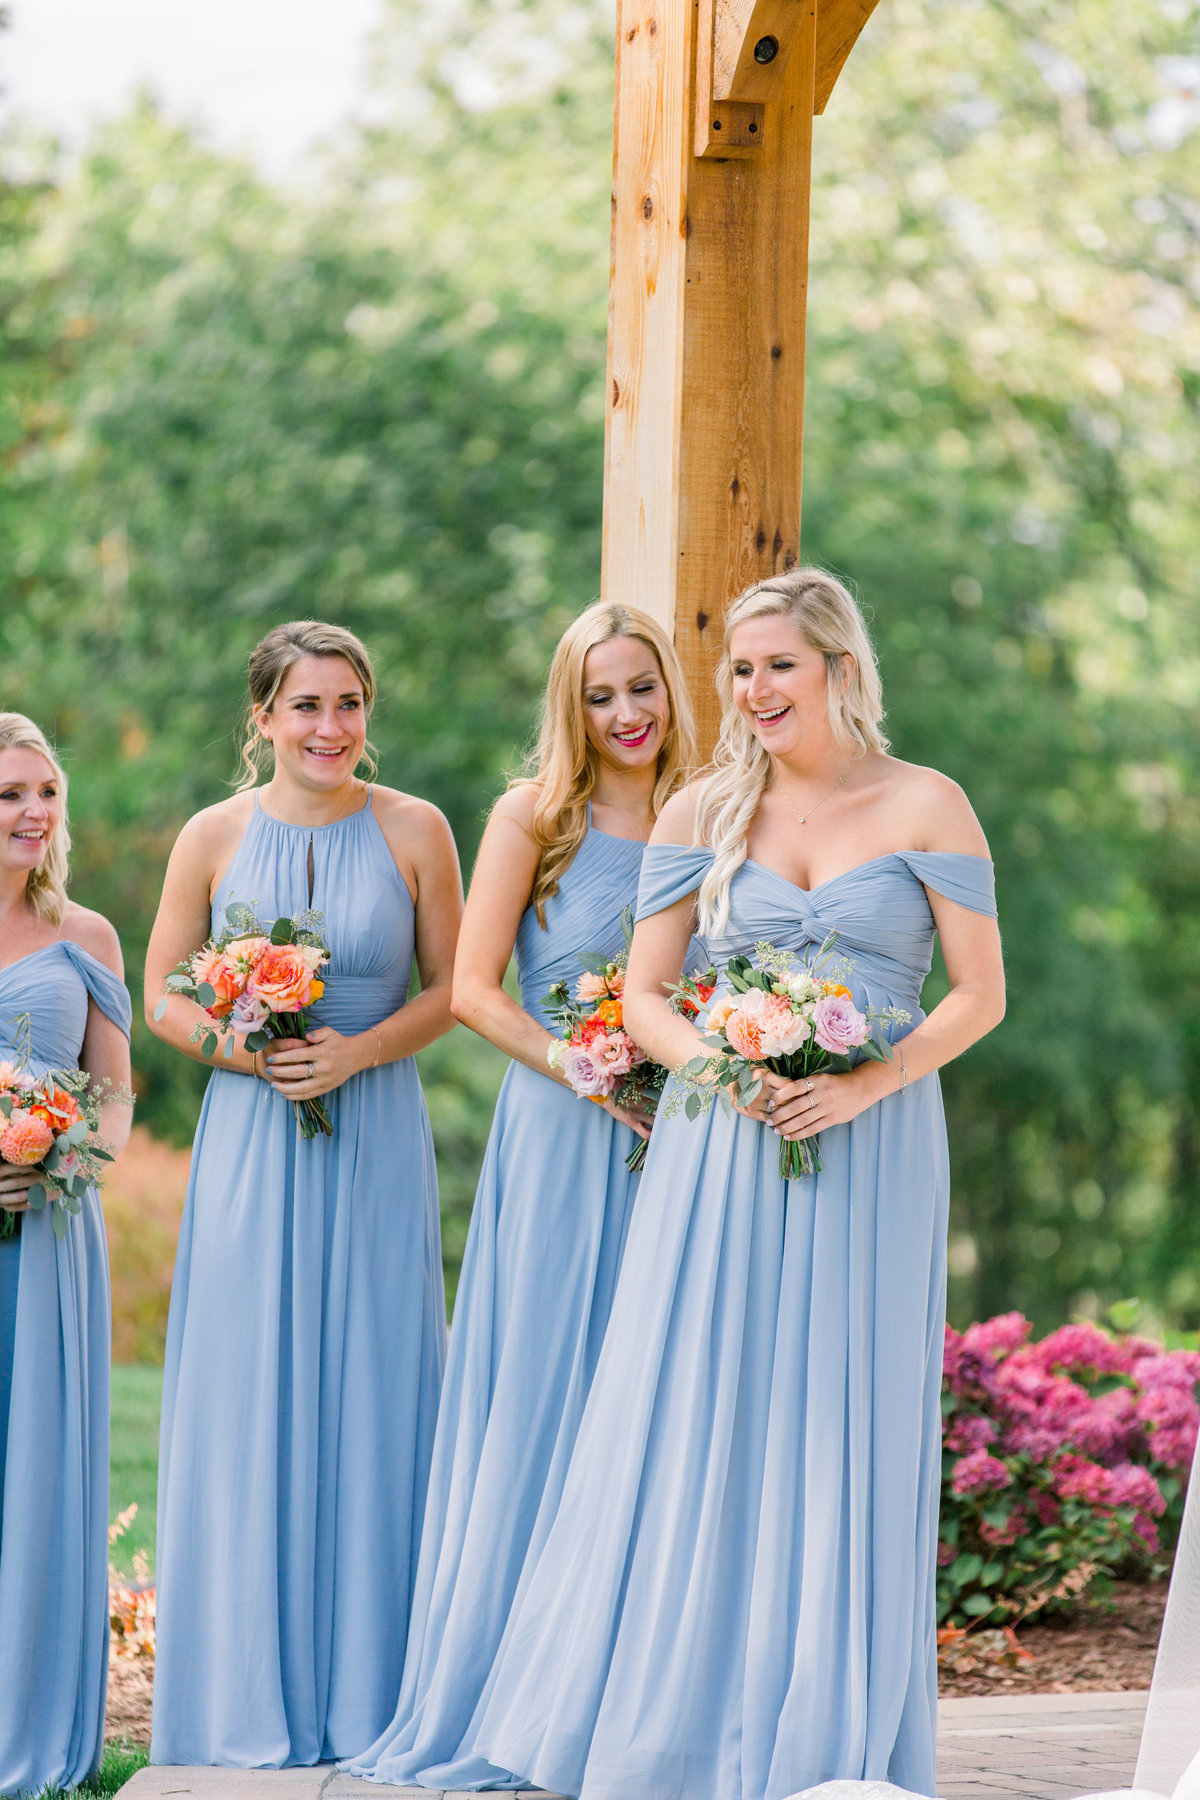 Fine Art Michigan Wedding Photographer captures bridesmaid laughing during Northern Michigan wedding